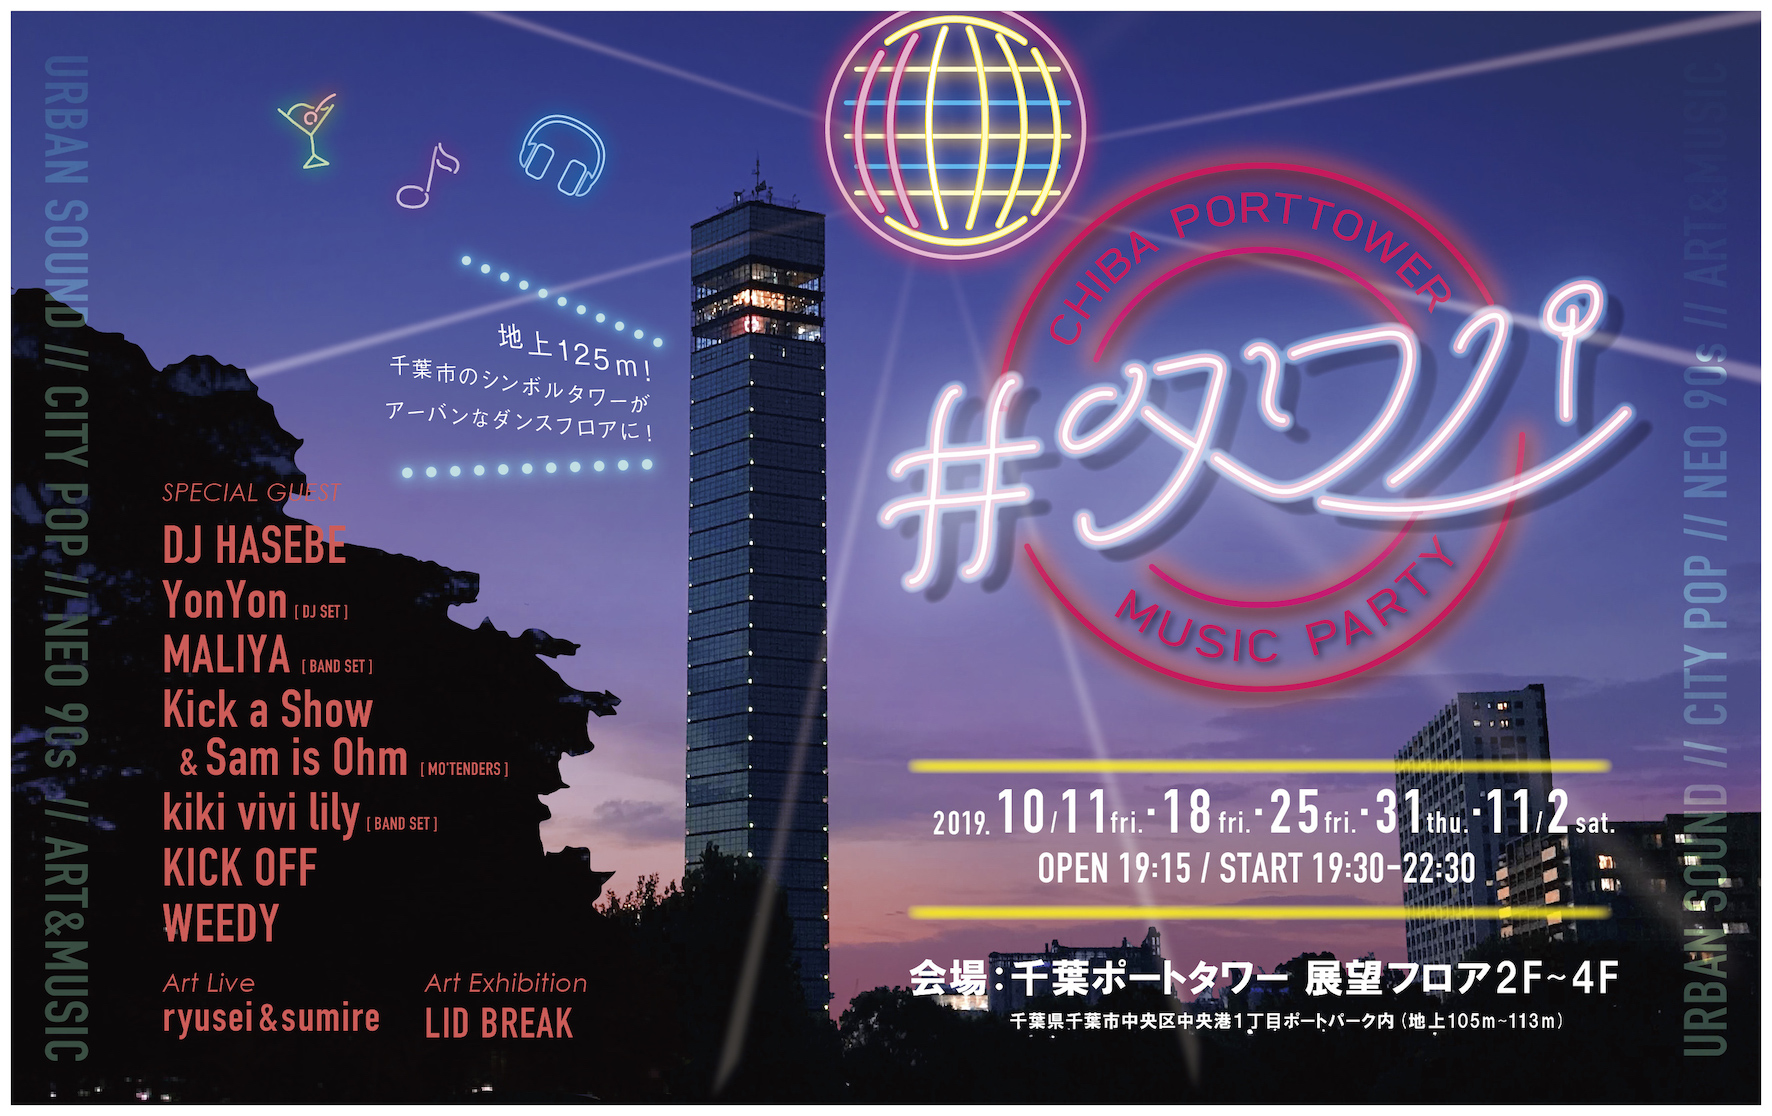 #タワパ -Chiba Porttower Music Party- FINAL ft. DJ HASEBE , YonYon